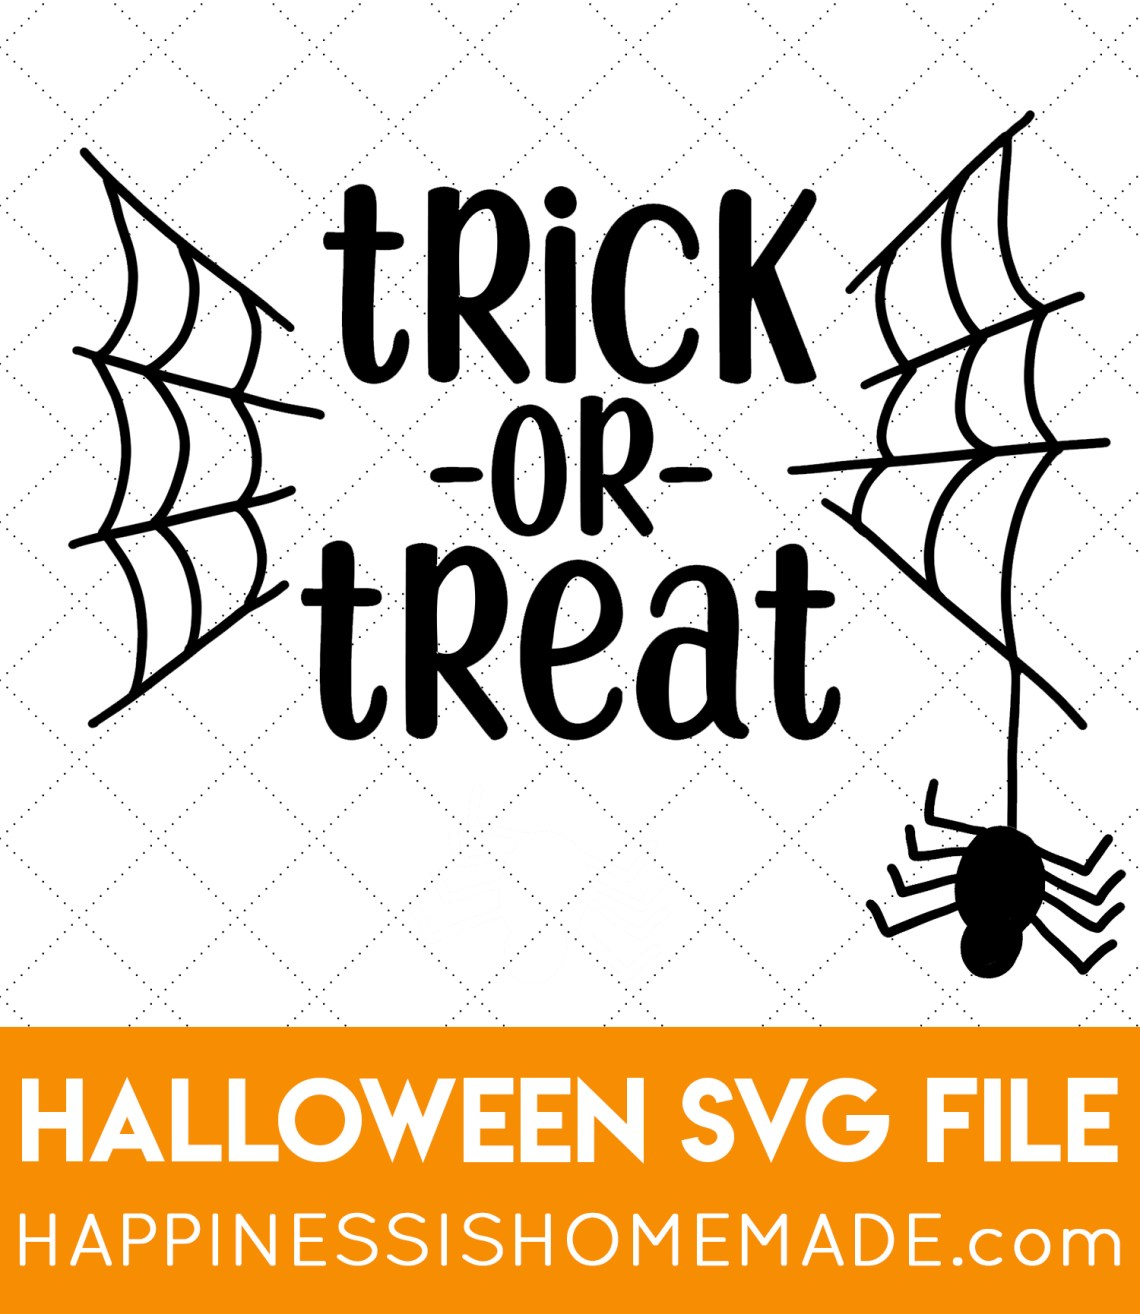 Download Free Halloween SVGs - Happiness is Homemade